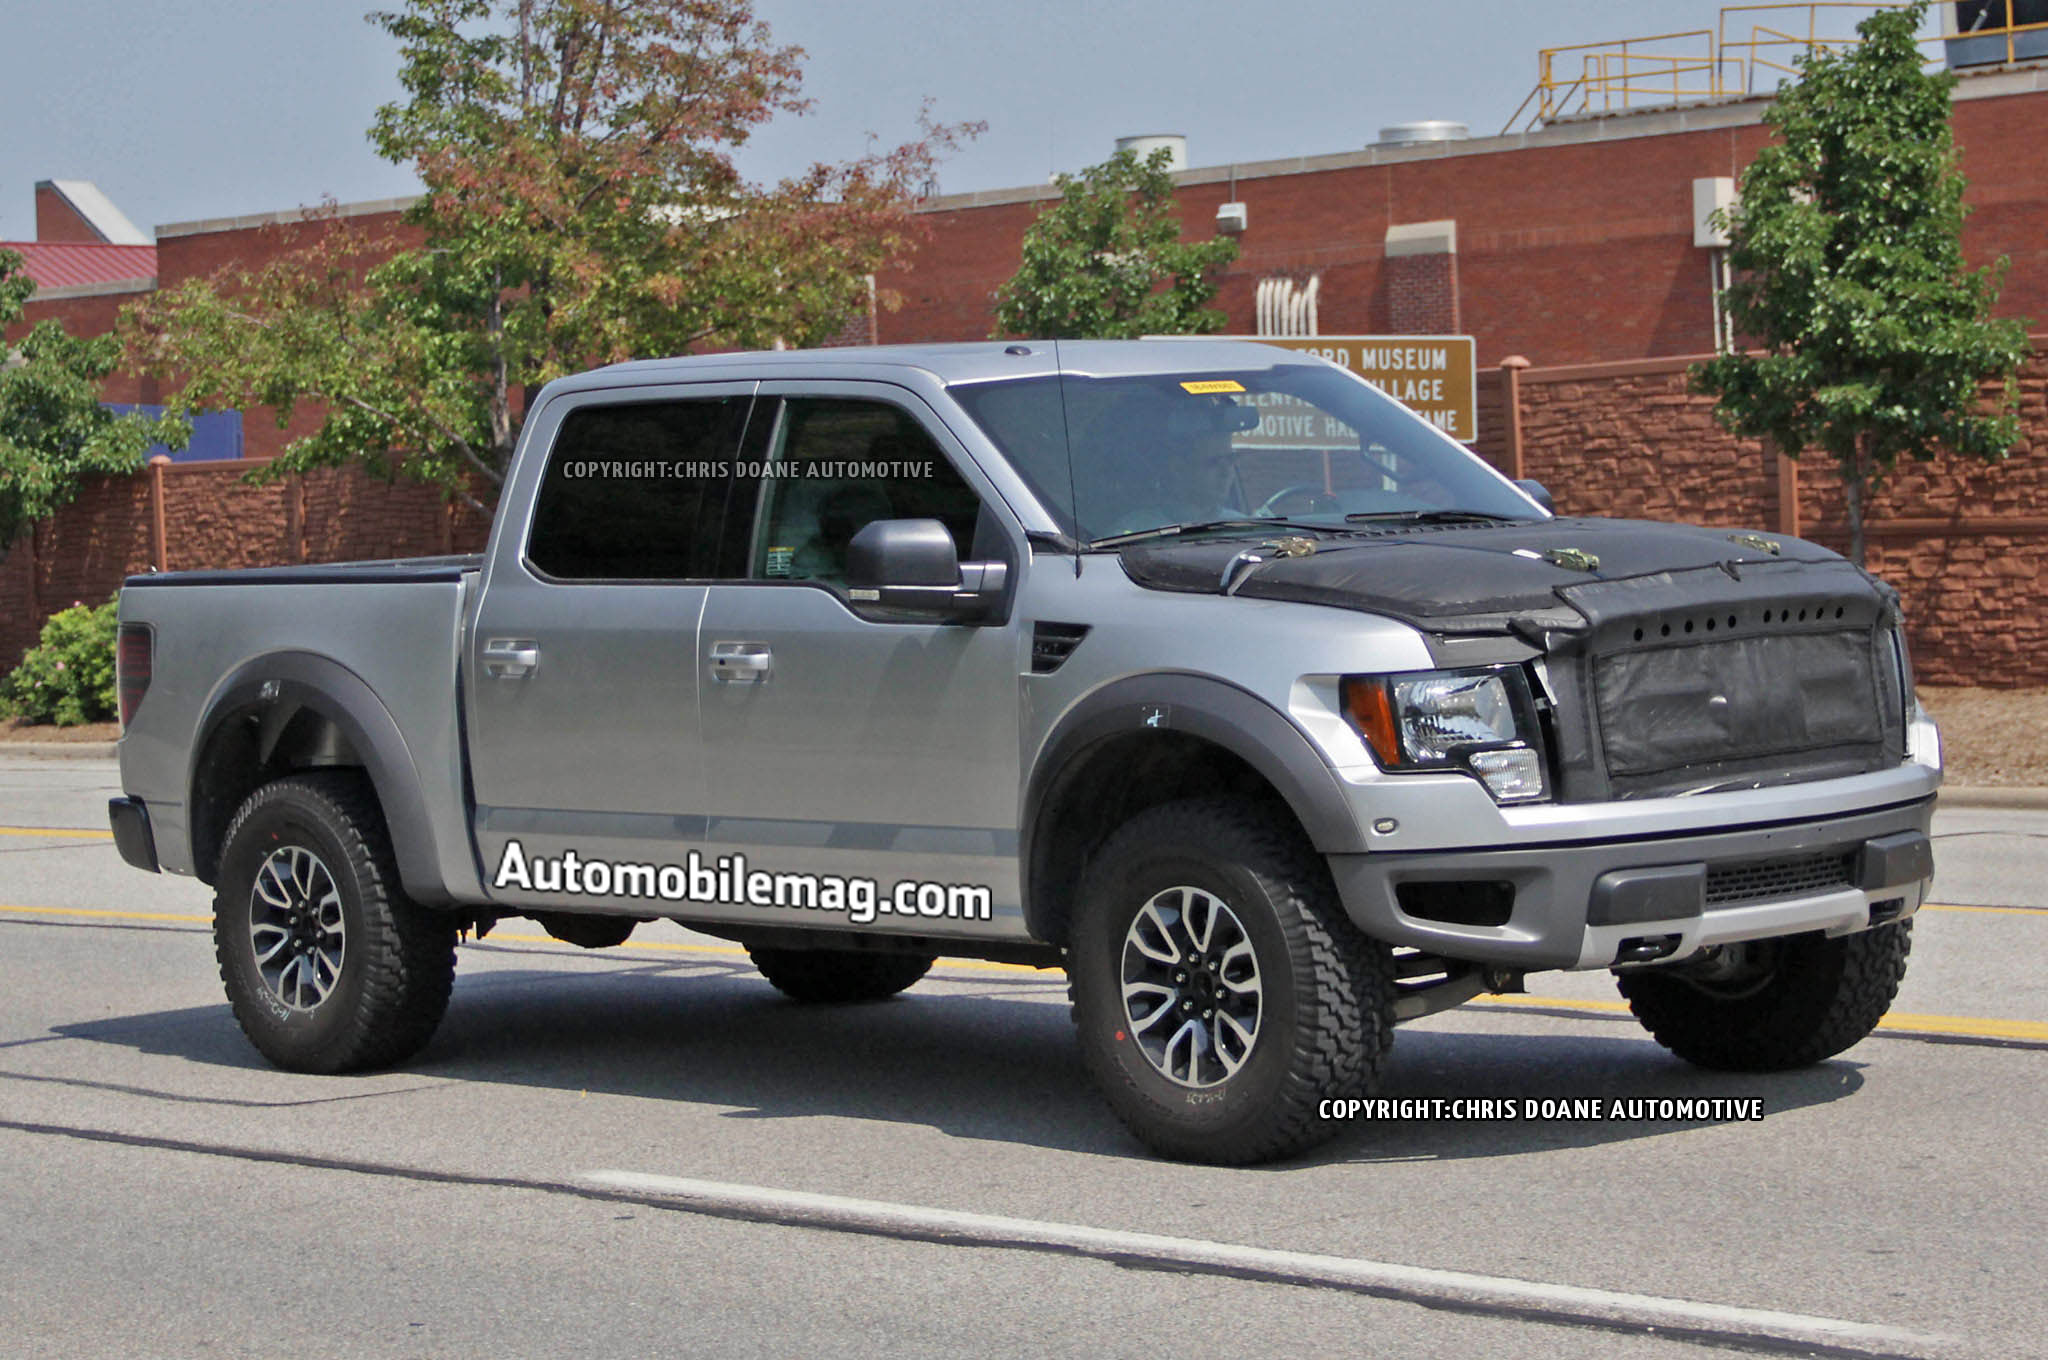 in f news spied svt prototype three ahead quarter changes spy front gen photos next raptor ford